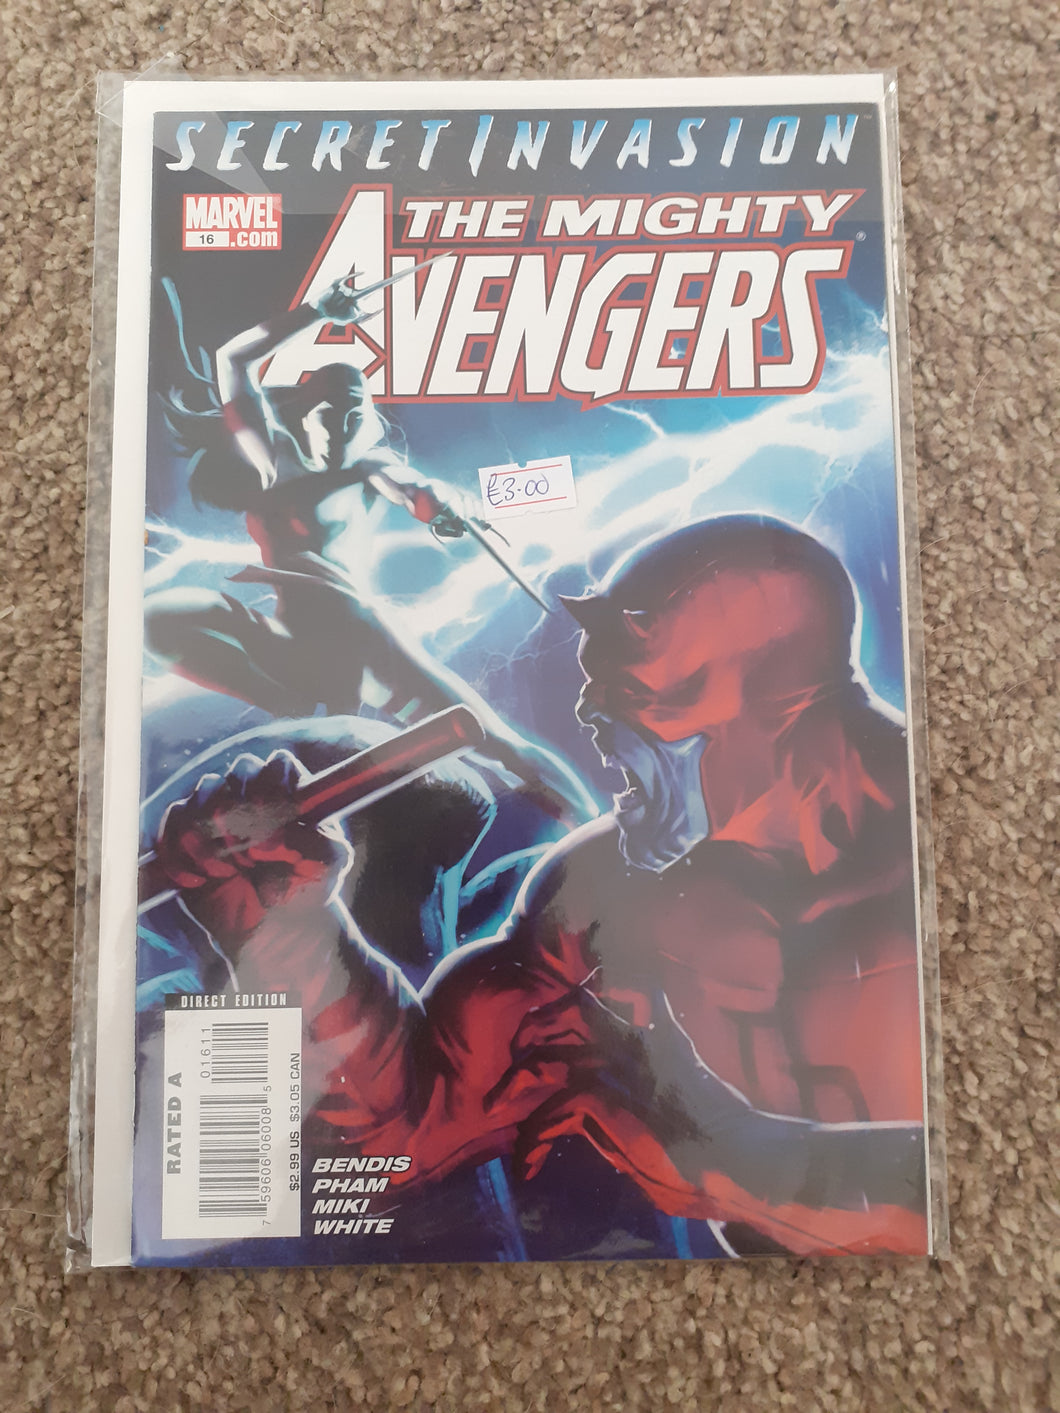 The Mighty Avengers: Secret Invasion #16